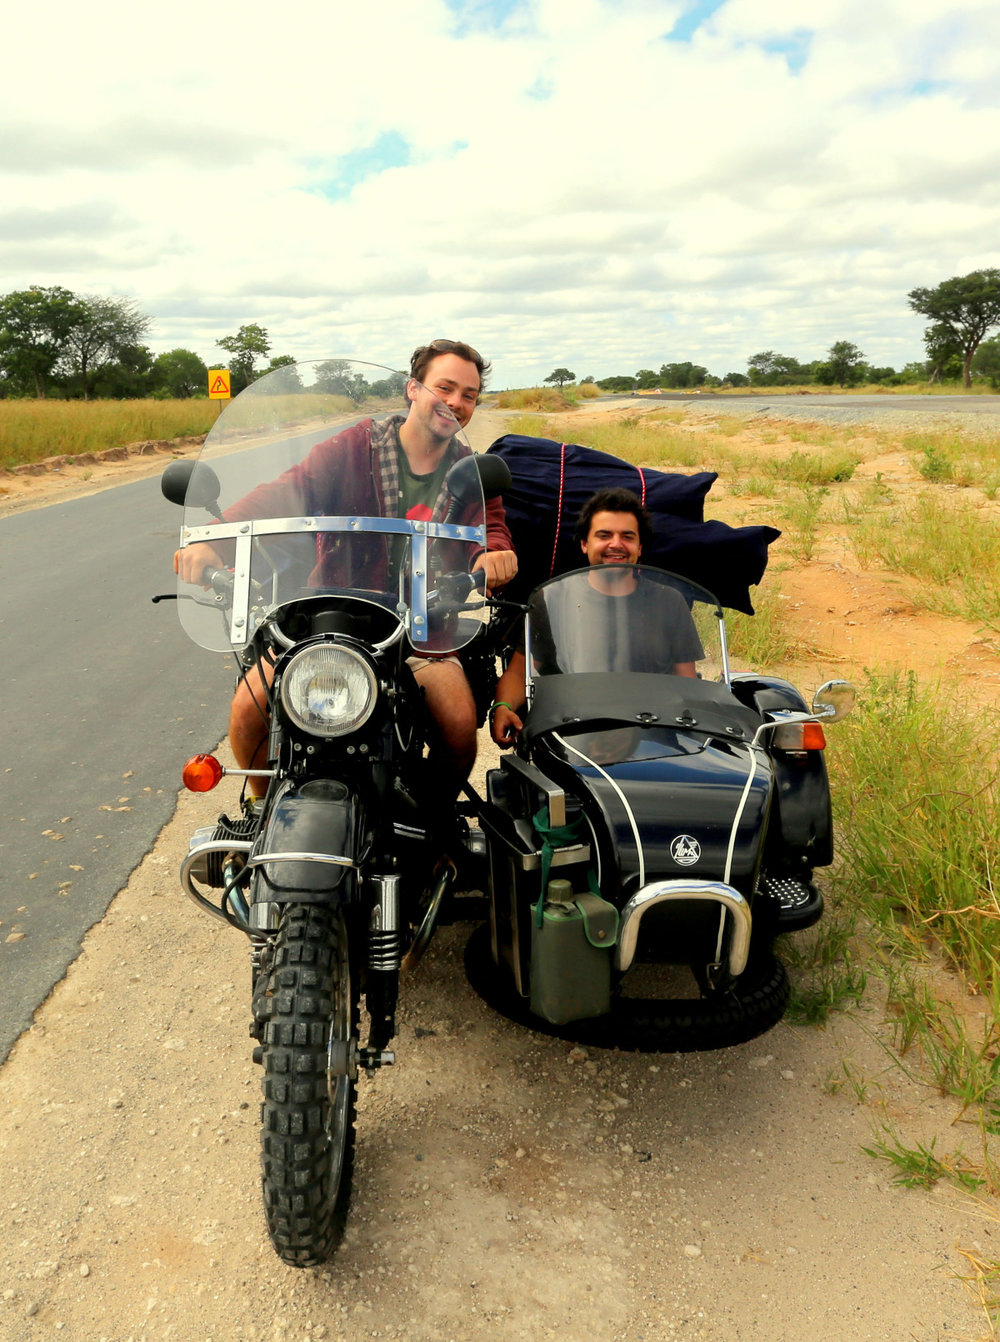 bike + sidecar.jpg